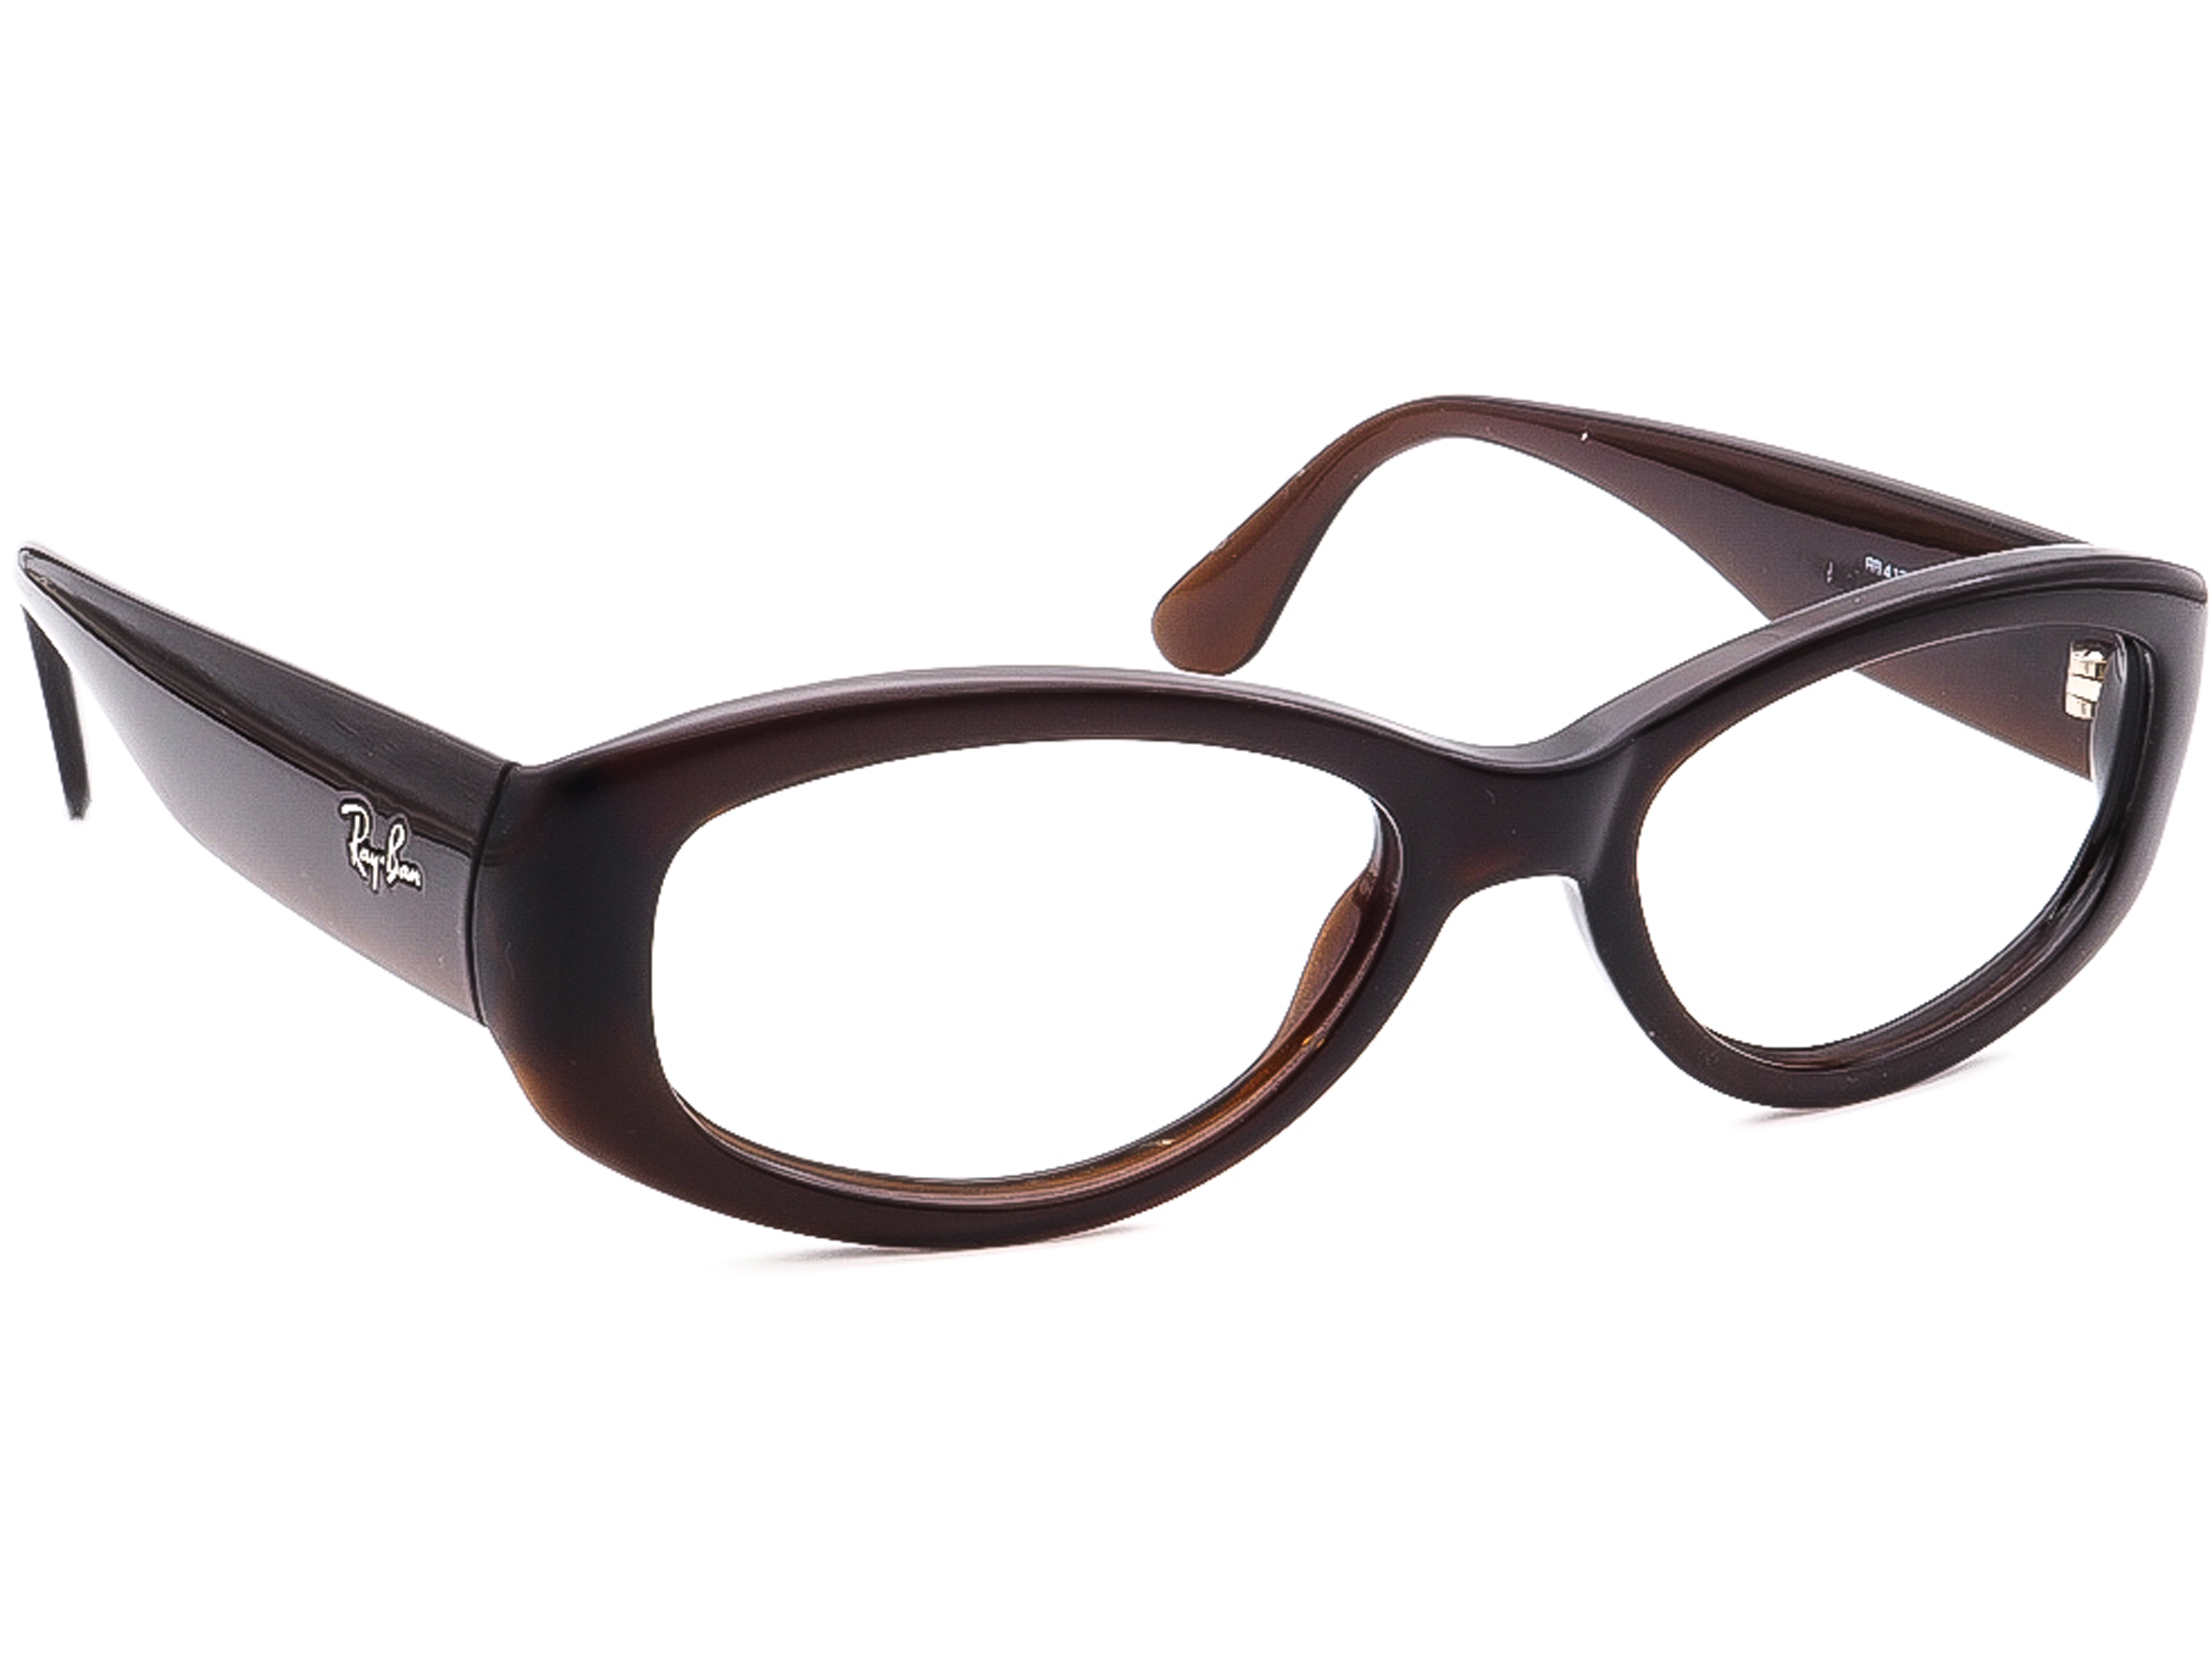 Ray Ban RB 4135 714/13 Sunglasses Frame Only